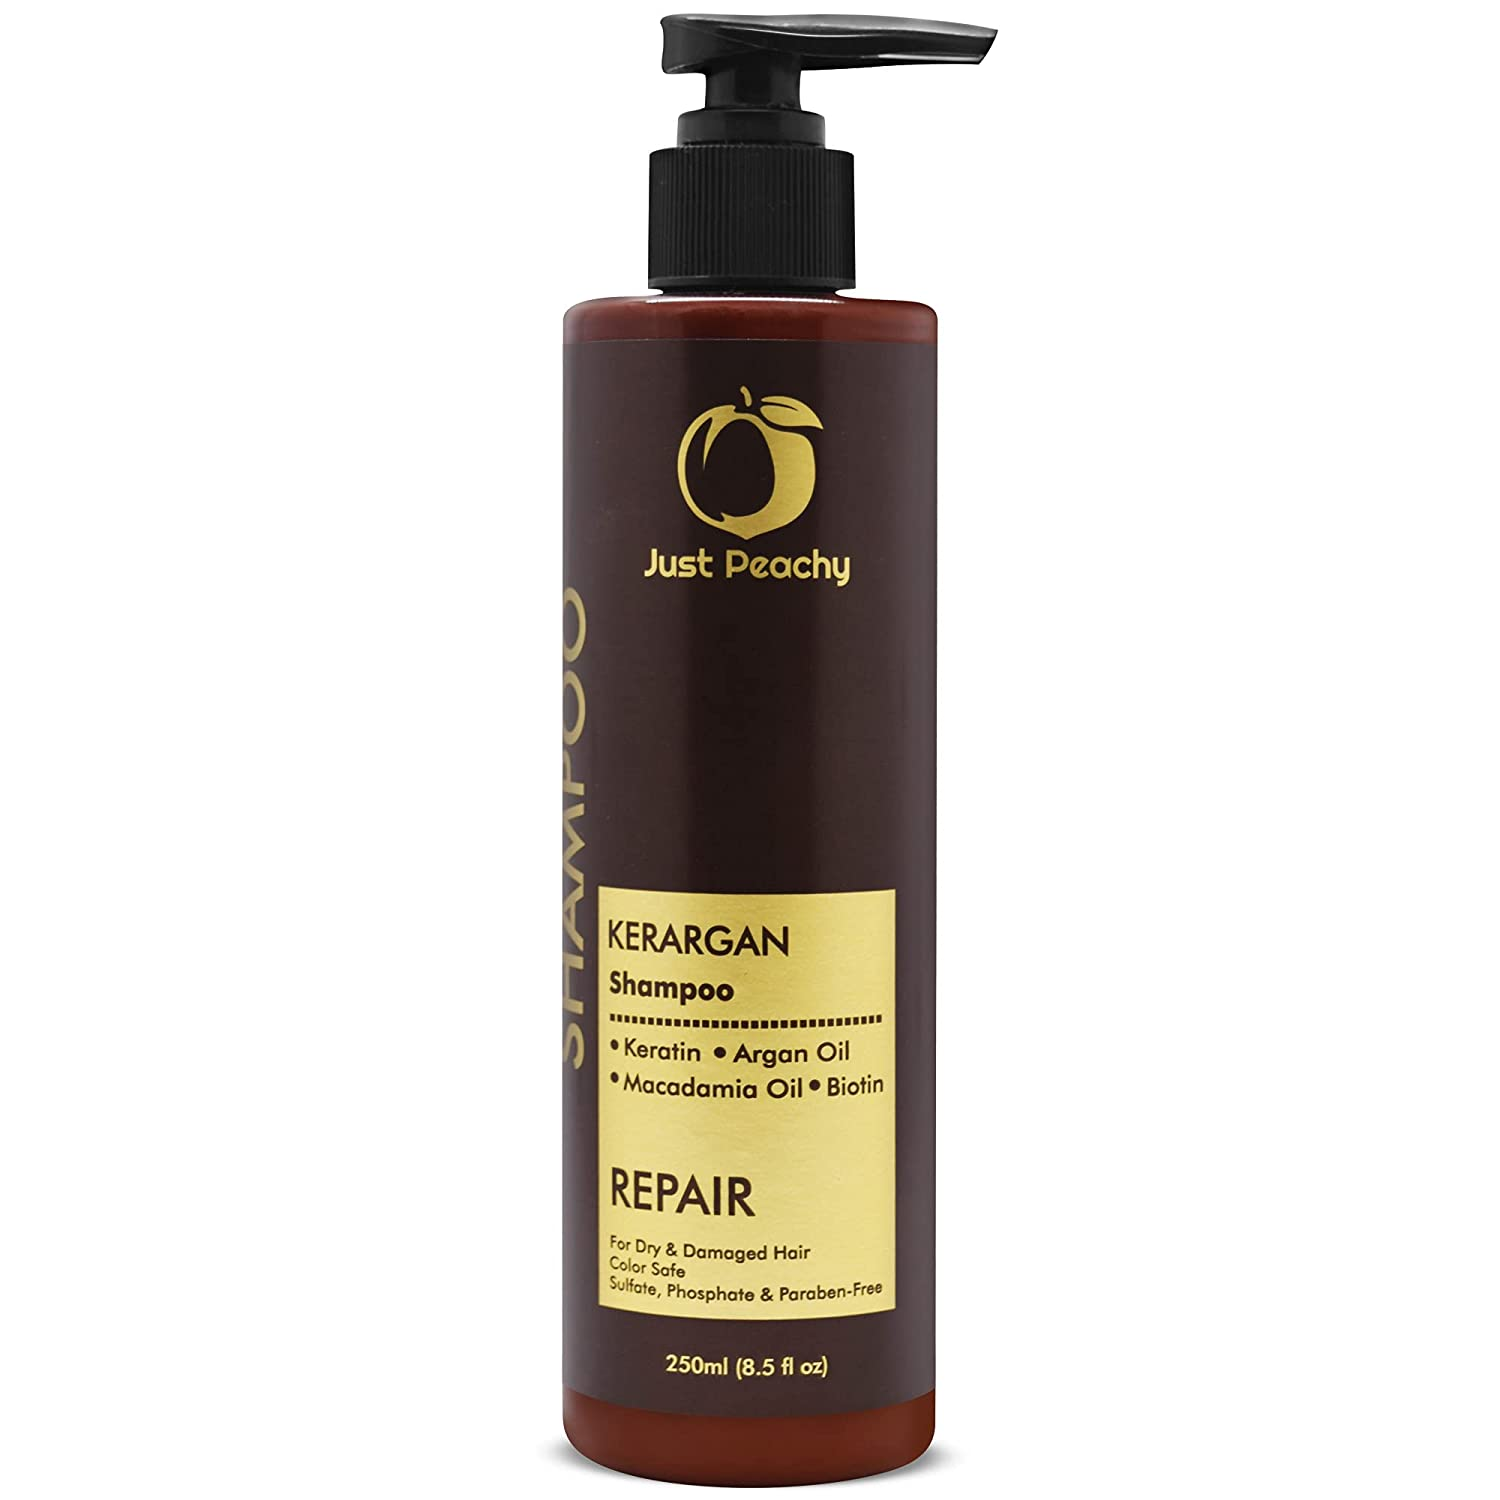 Girlistan - How to Take Care of Dry Grey Hair?